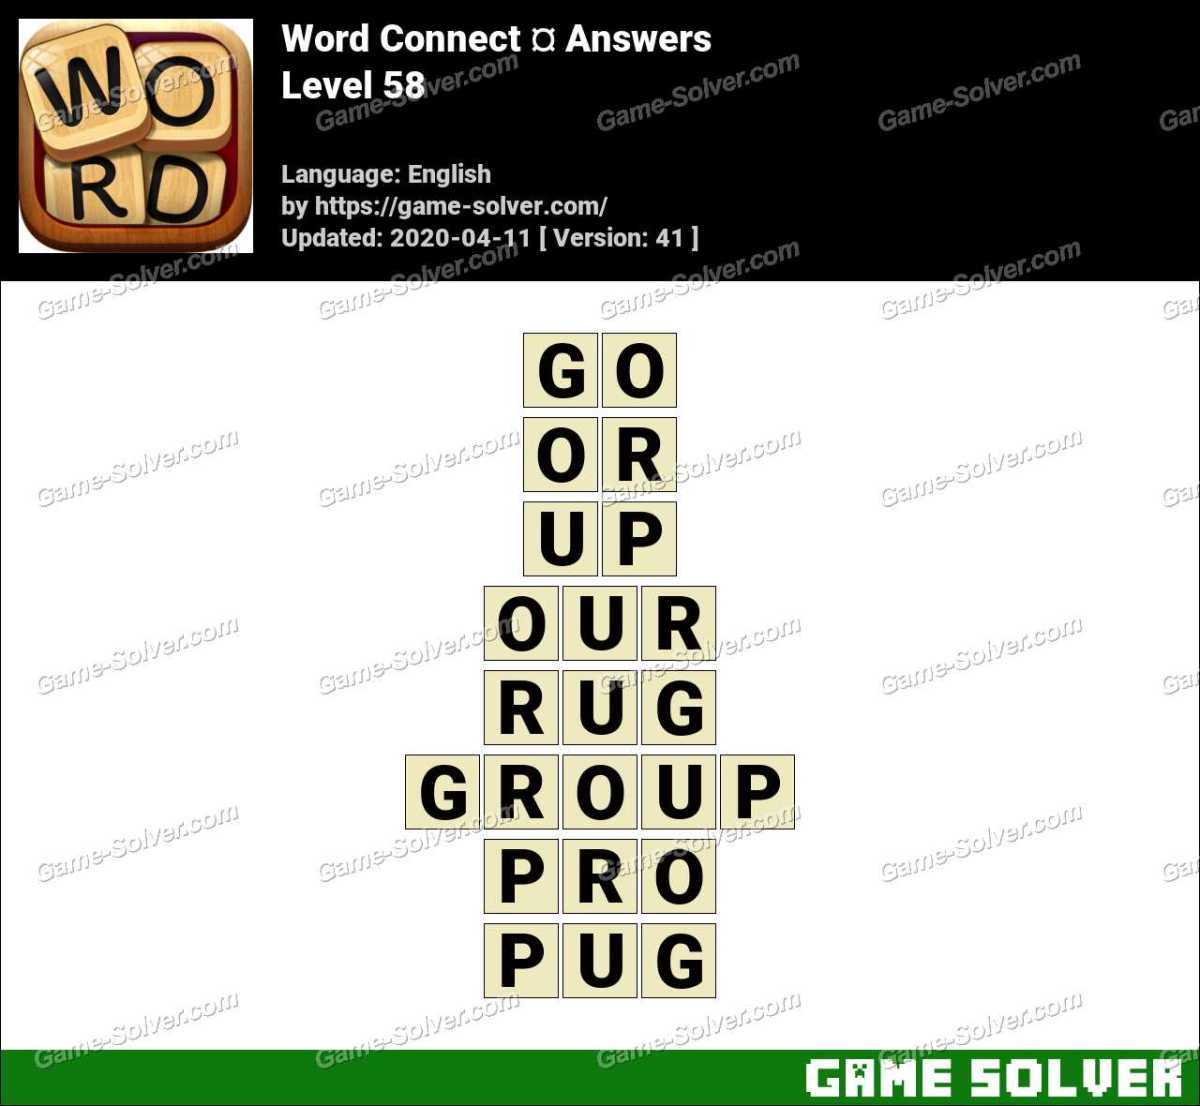 Word Connect Level 58 Answers